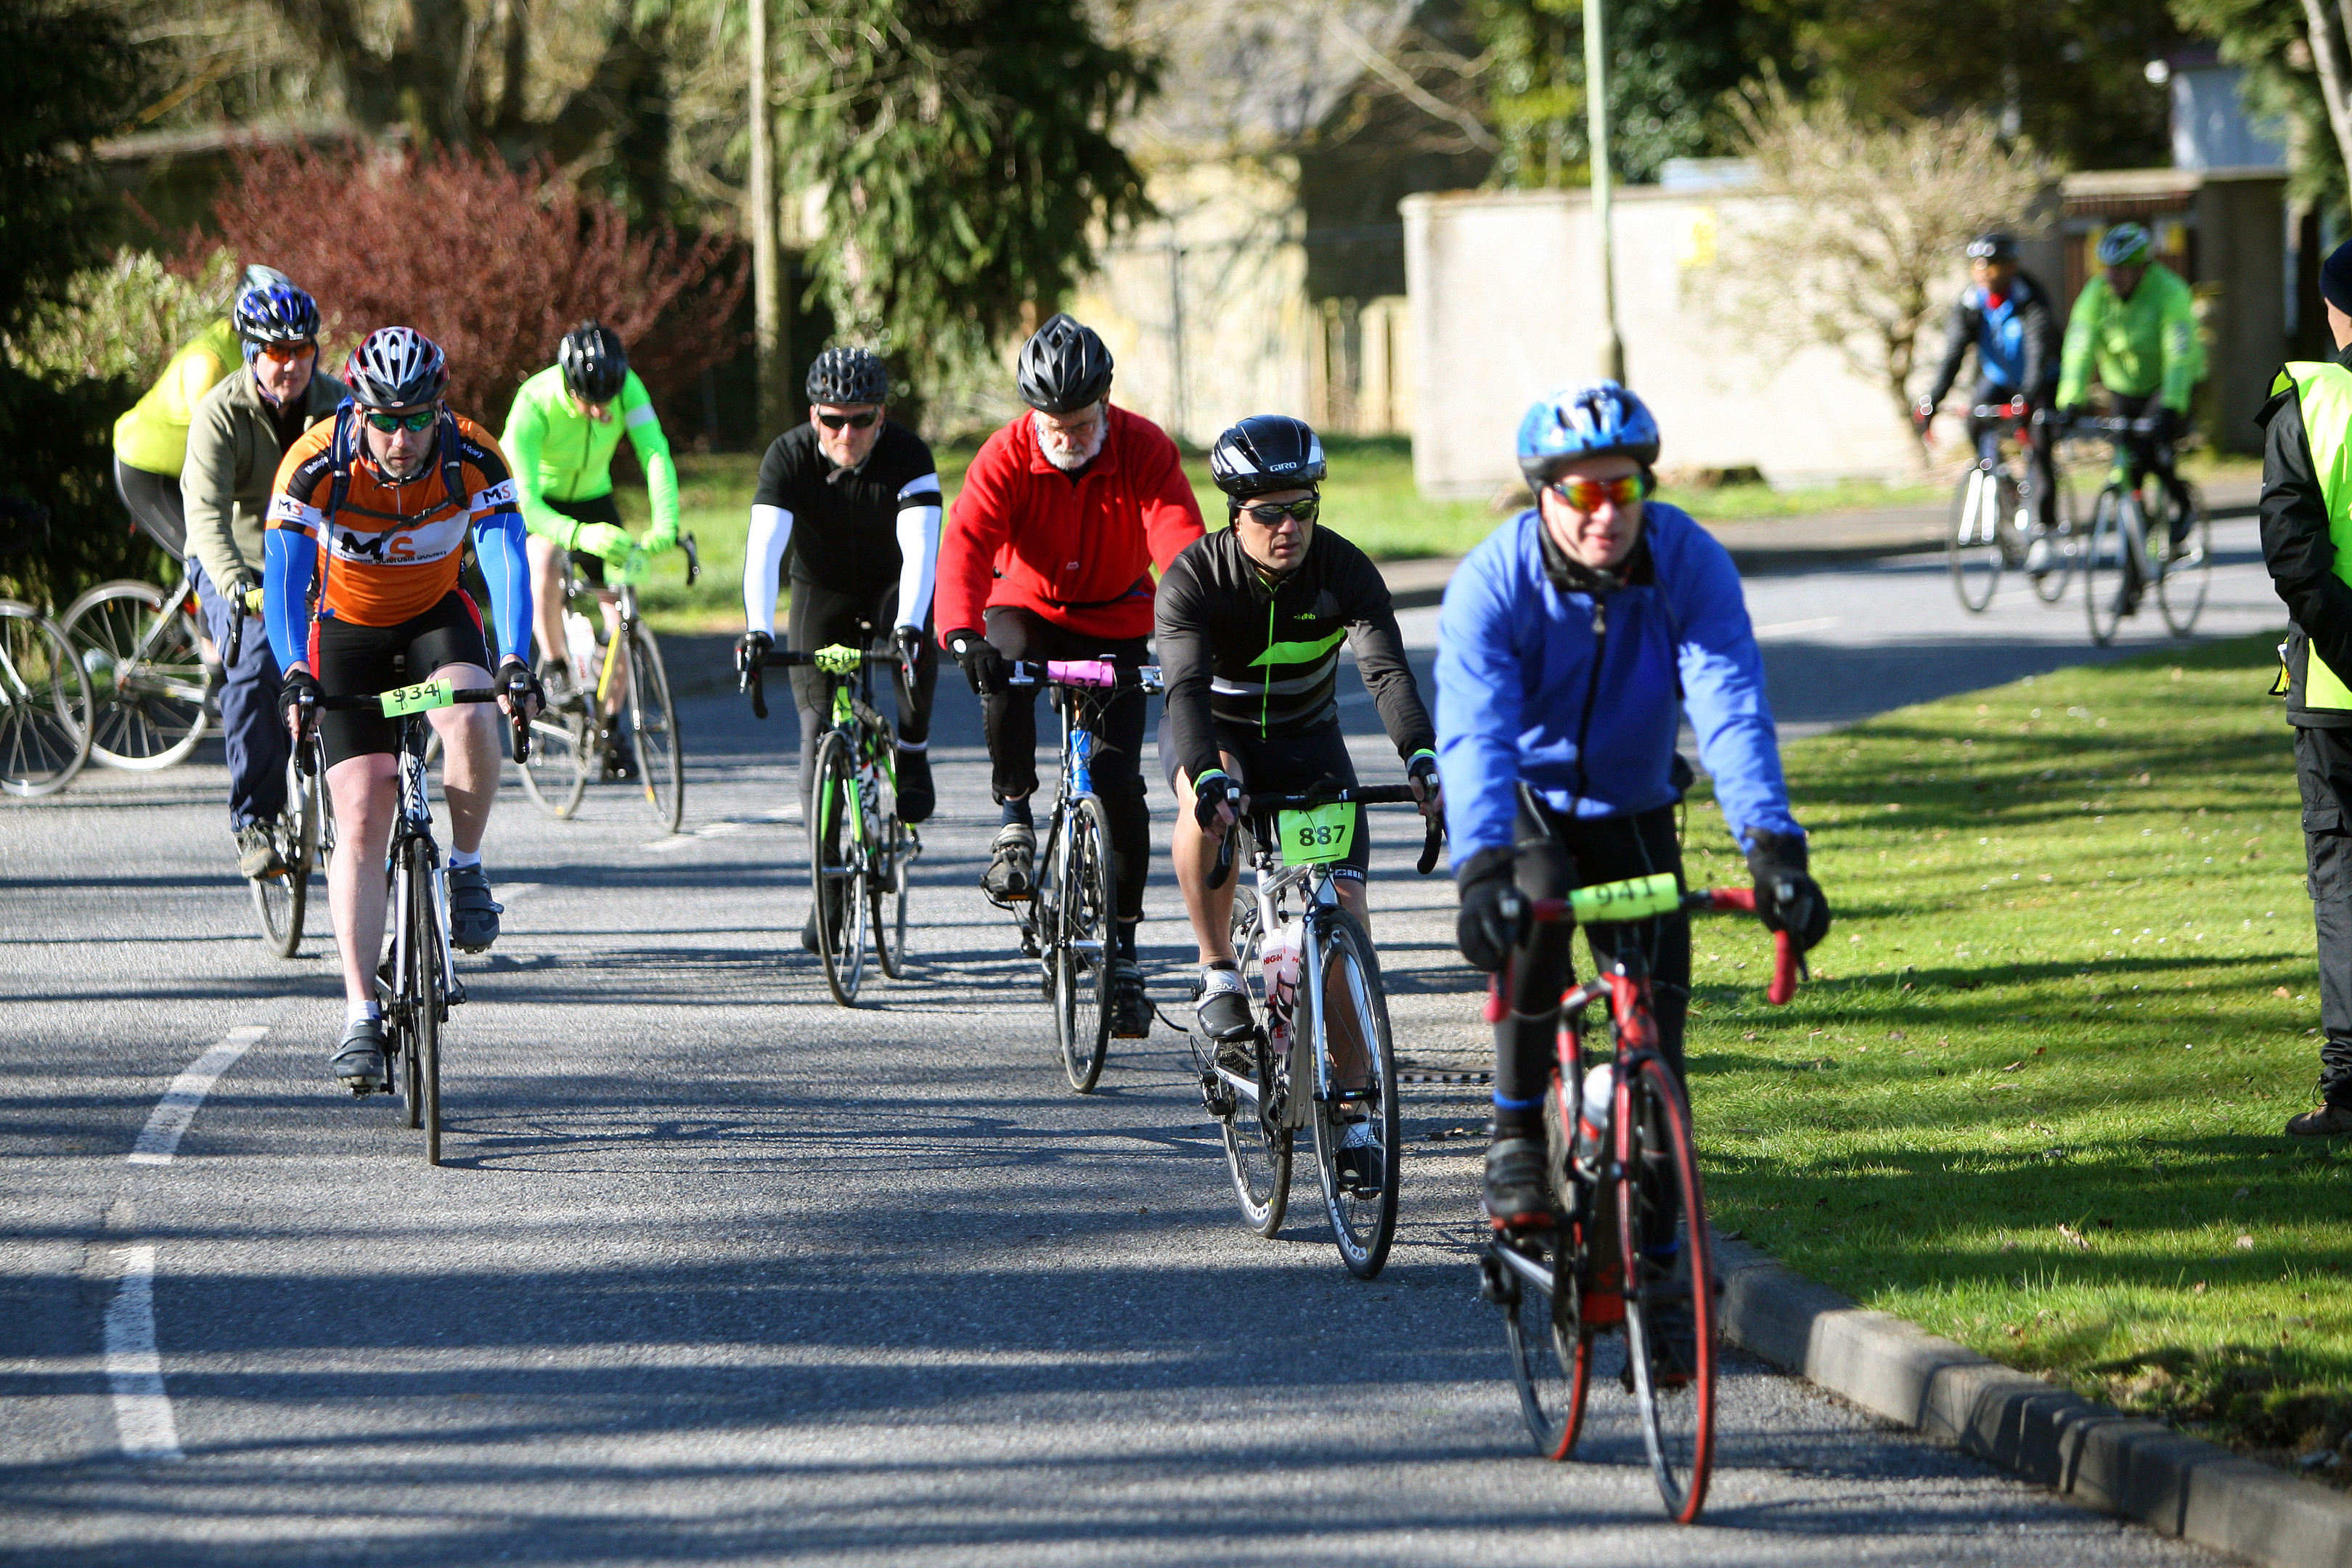 Cyclists in the Tayside Challenge Sportive.